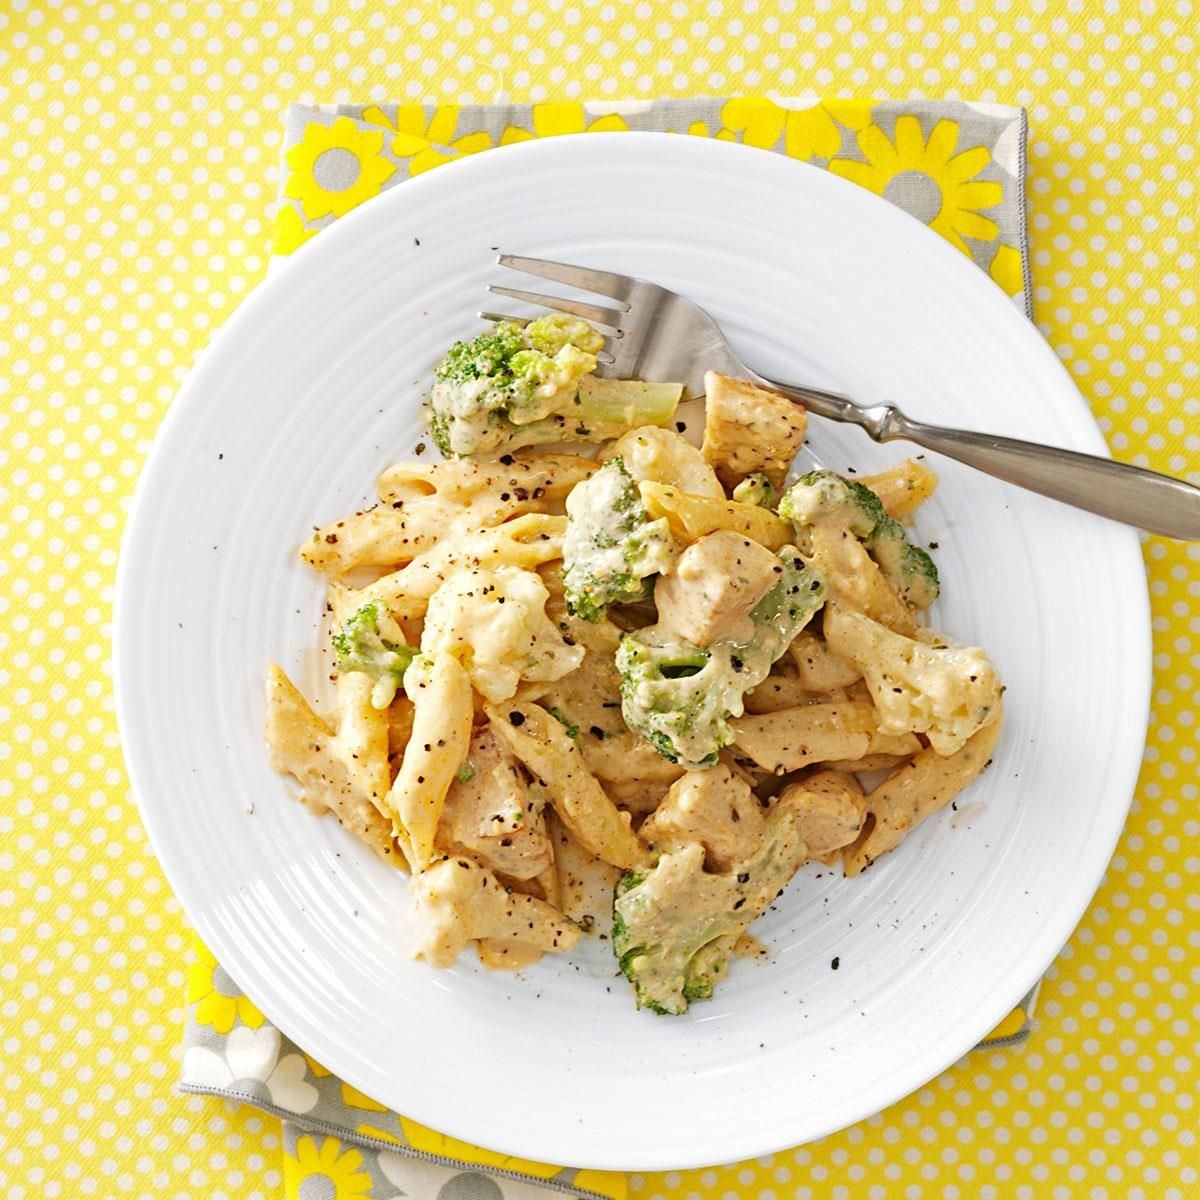 Barbecue Pork And Penne Skillet Recipe: Chicken Alfredo Recipes With Penne Pasta